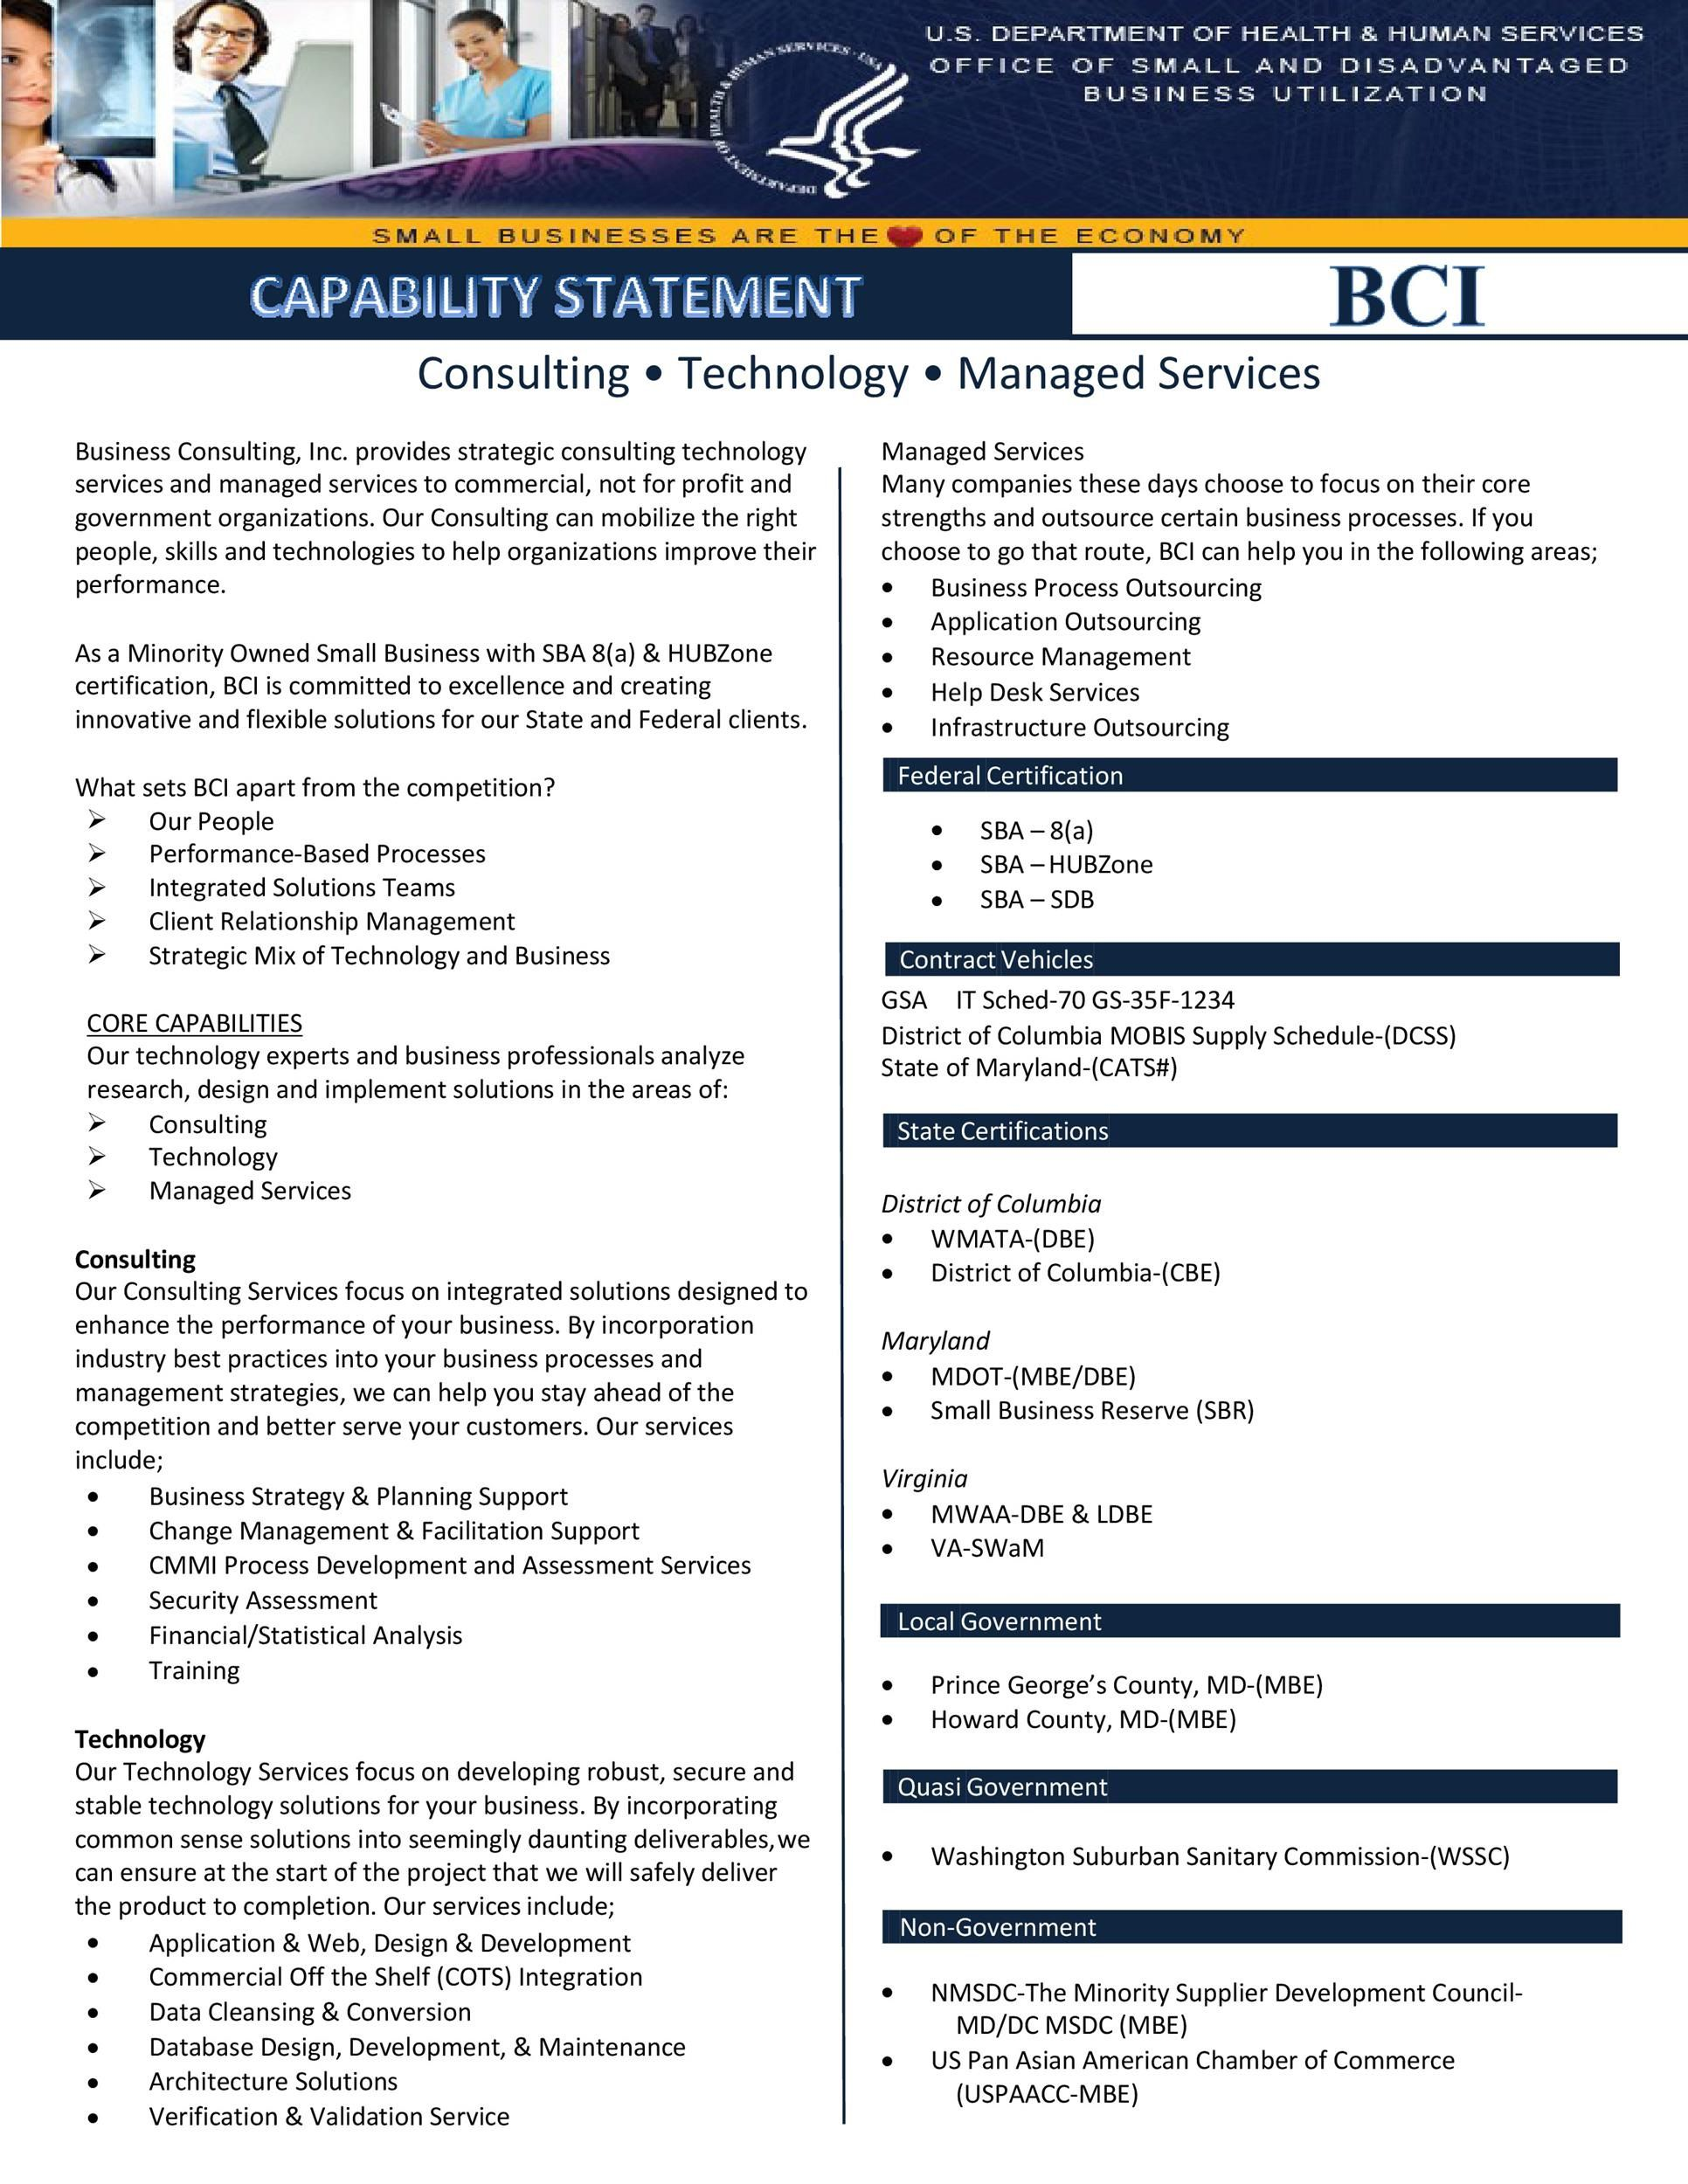 006 Archaicawful Capability Statement Template Free Sample  Word Editable DesignFull